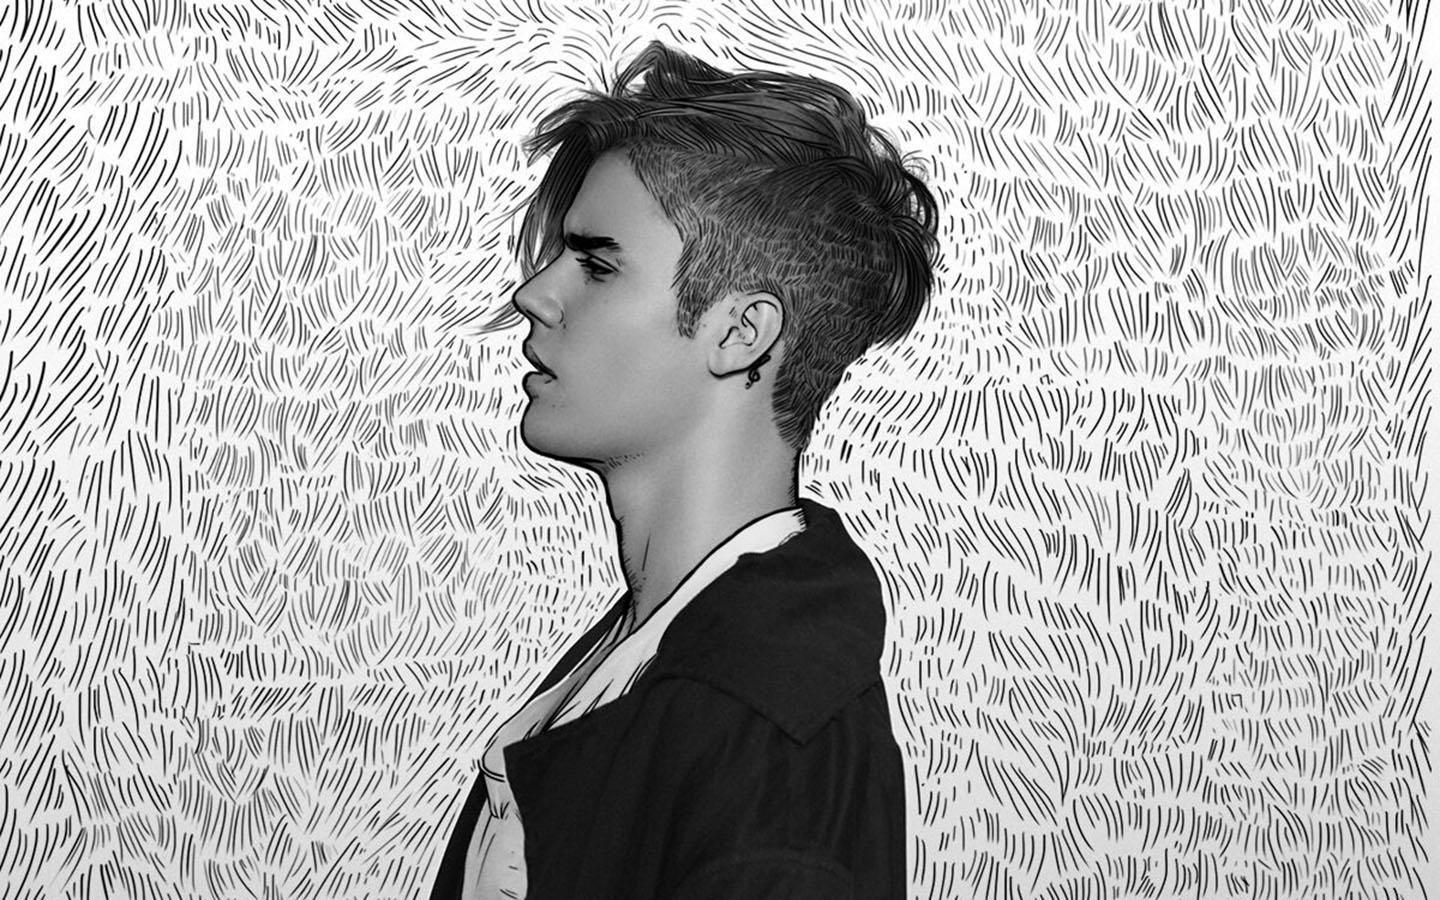 justin bieber wallpapers 2017 - wallpaper cave